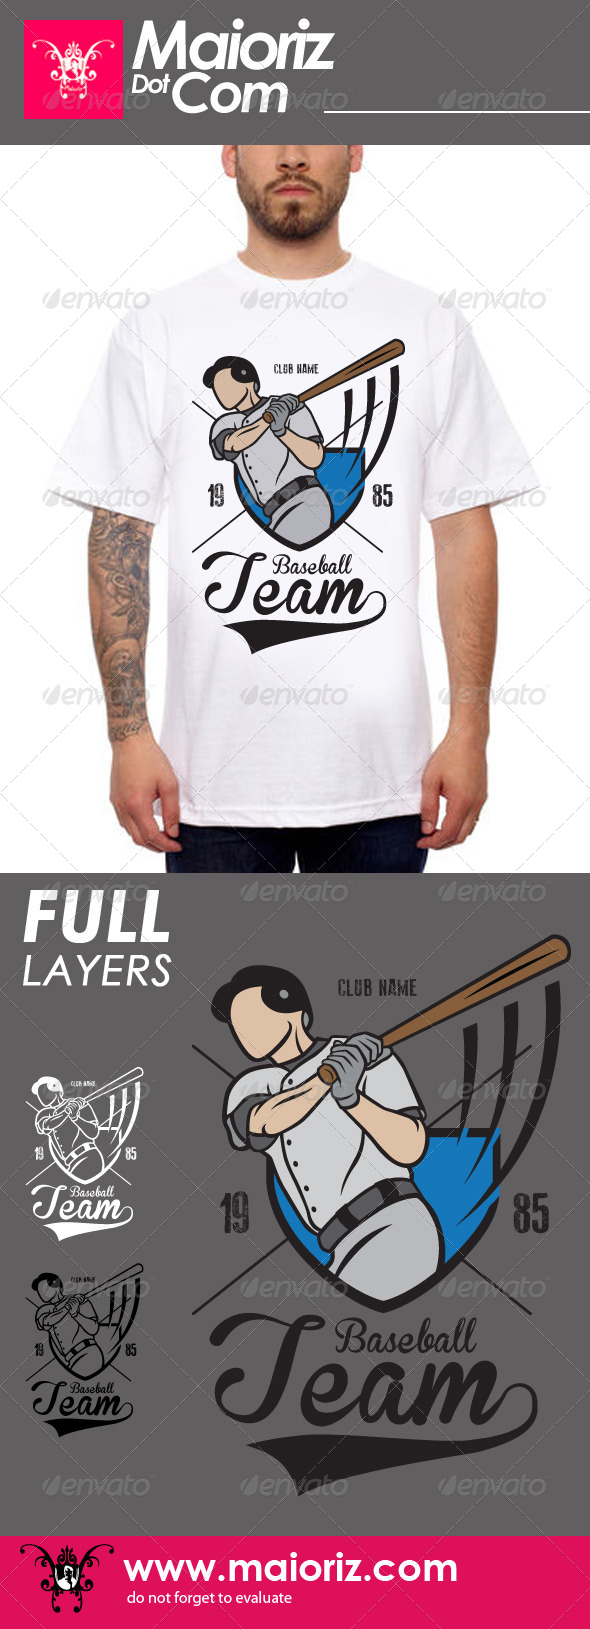 Baseball Team Tshirt